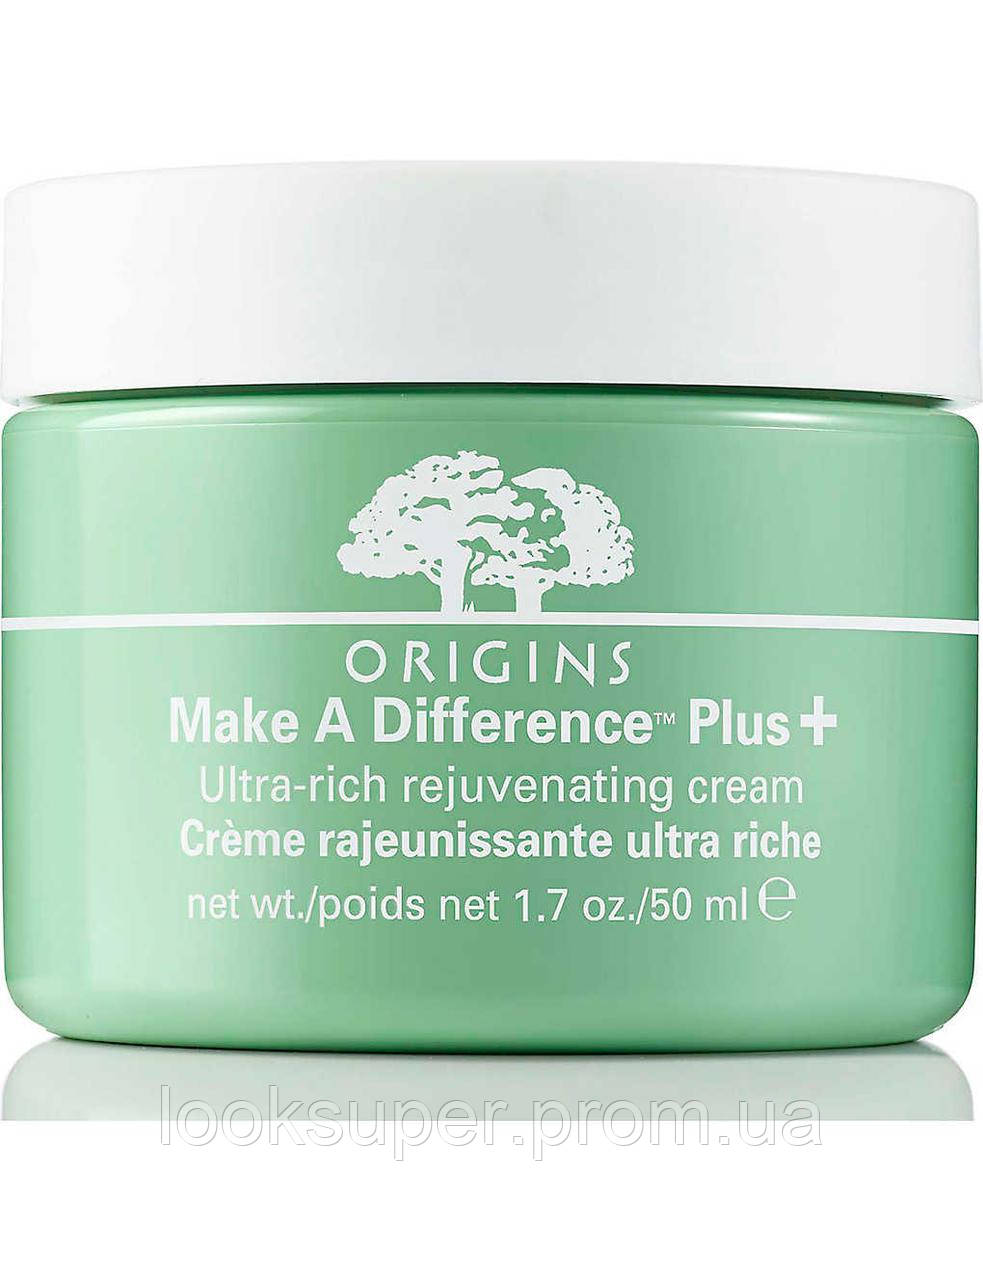 Крем для лица ORIGINS Make a Difference™ + Ultra Rich Cream